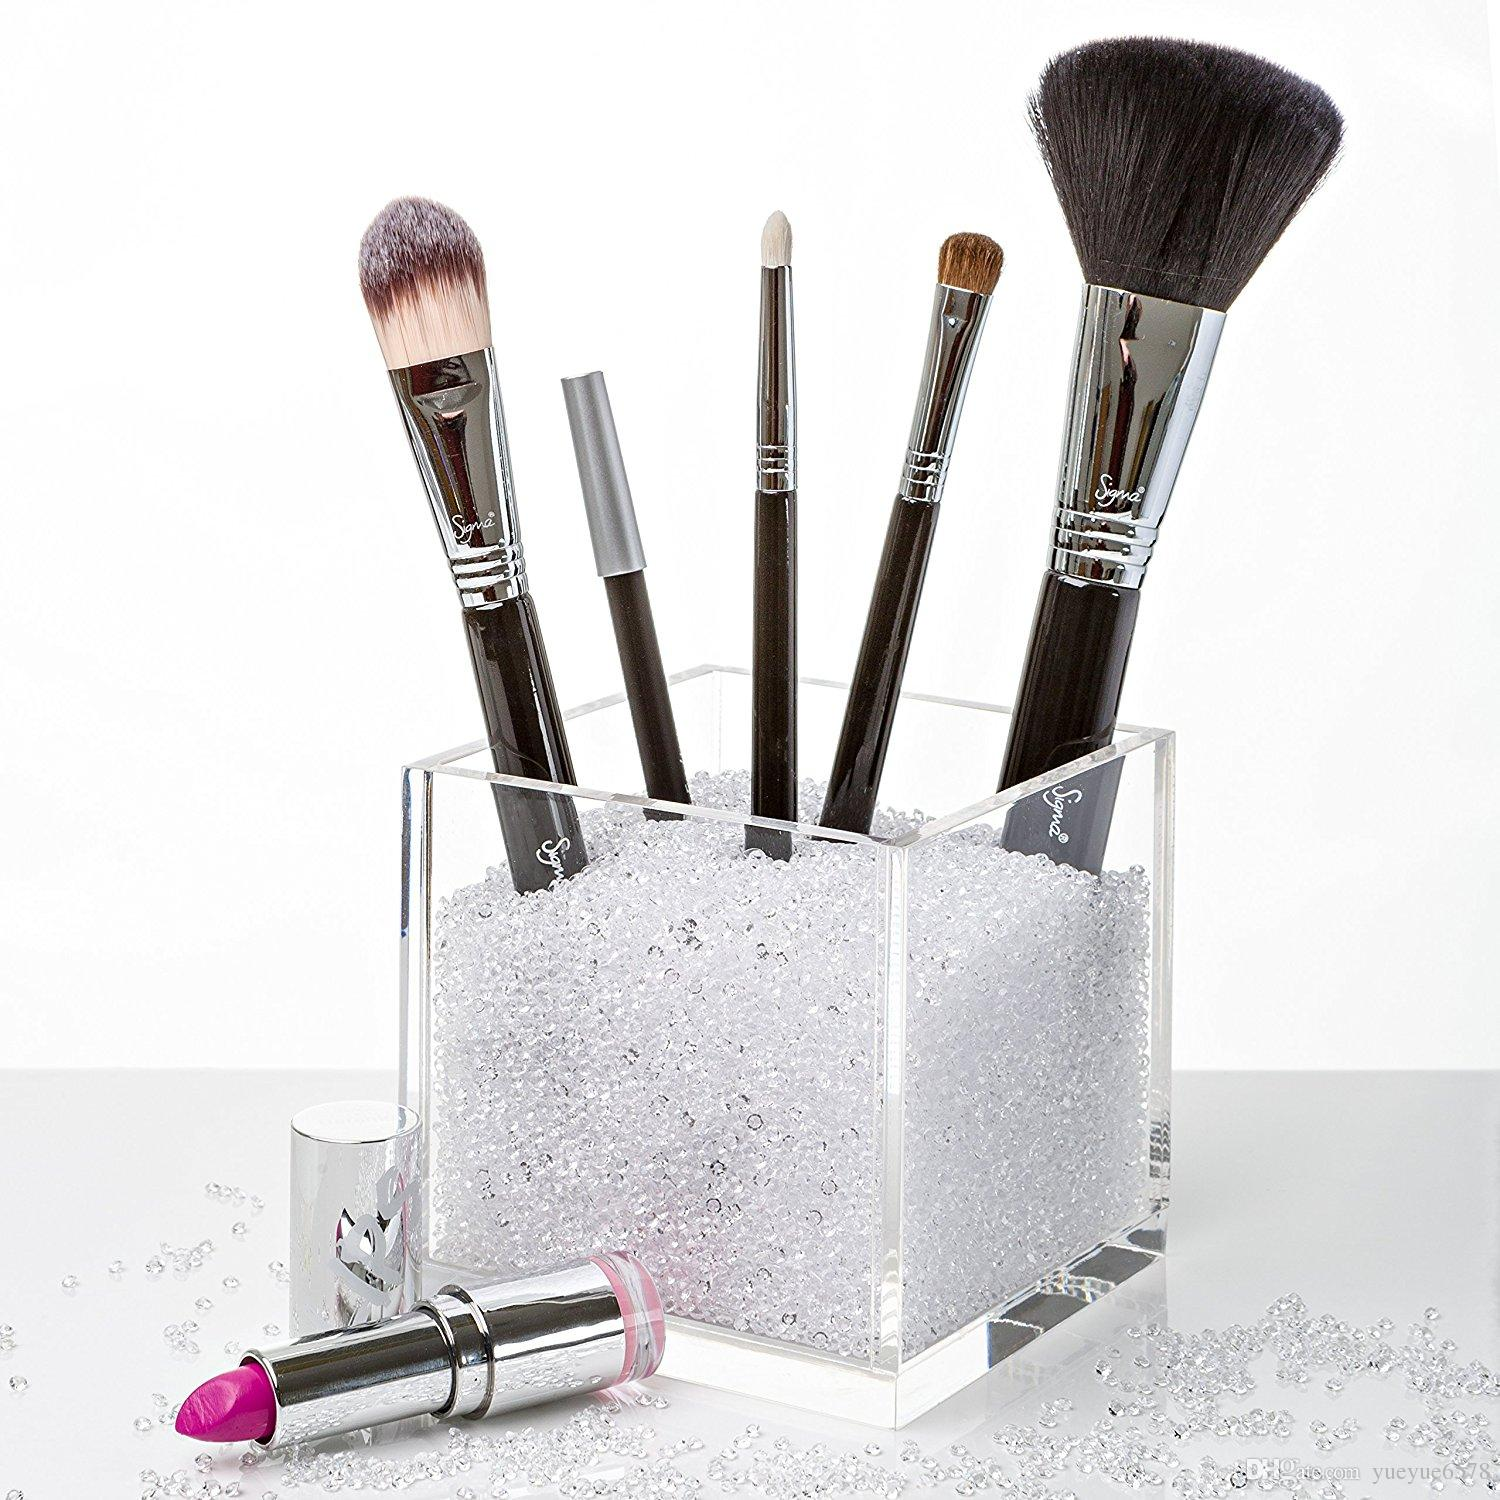 makeup brush holder beads. 2018 acrylic square make up box ,plexiglass makeup brush holder countertop cosmetic organizer with crystal stones beads from yueyue6578, $23.12 | dhgate.com k